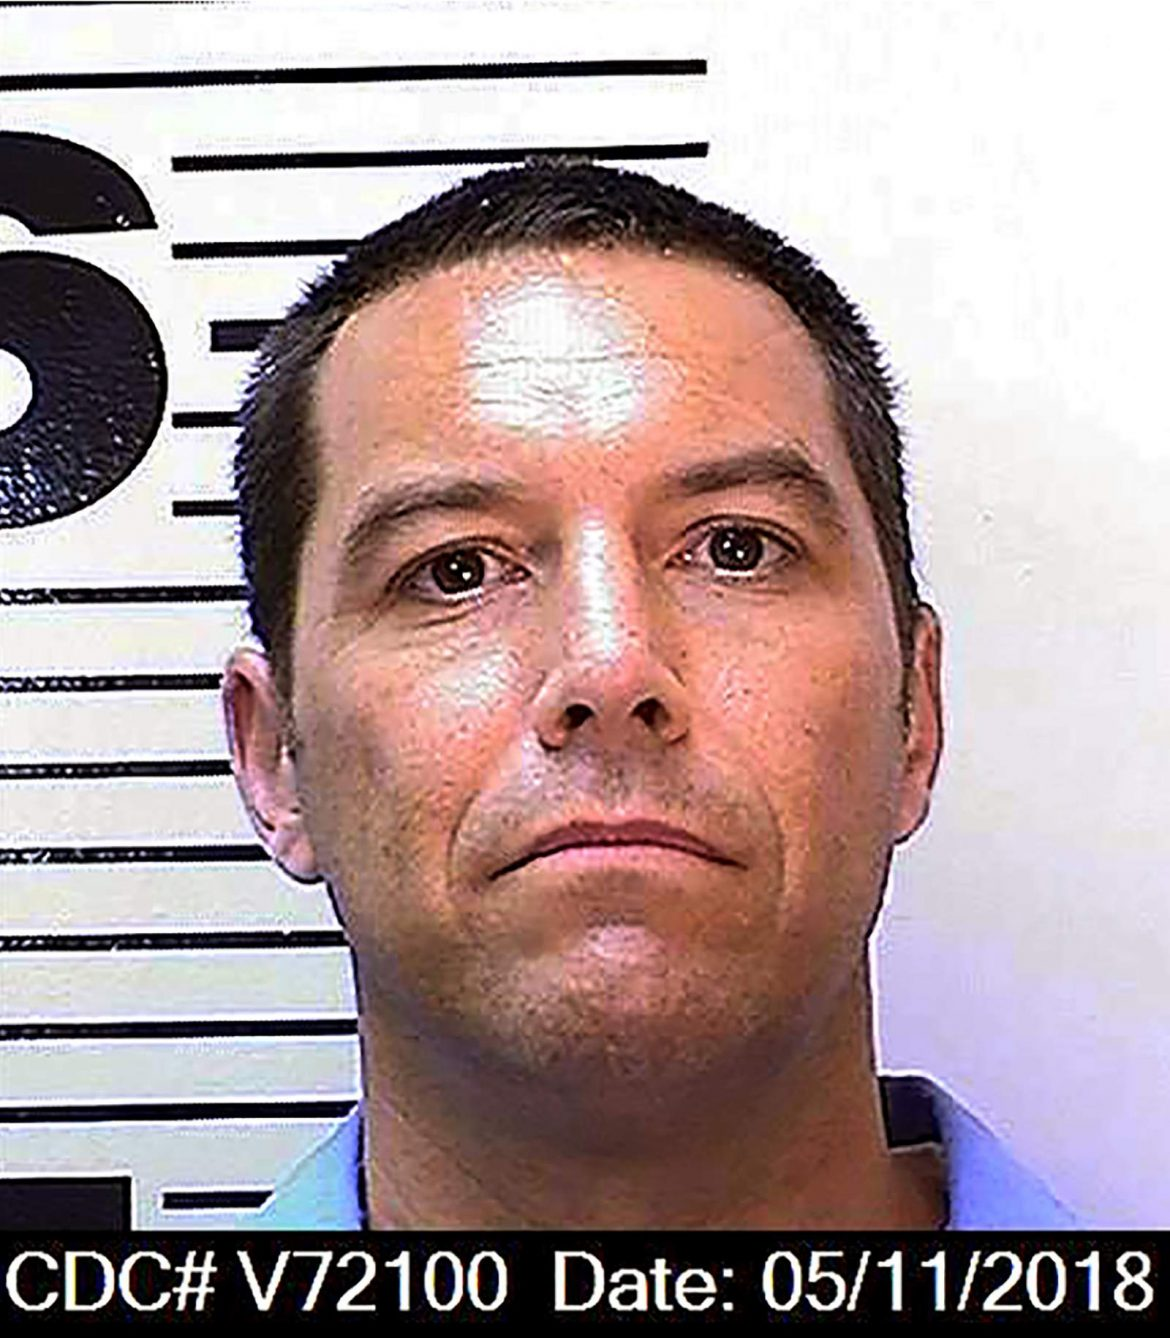 California sent jobless aid to Scott Peterson, other killers